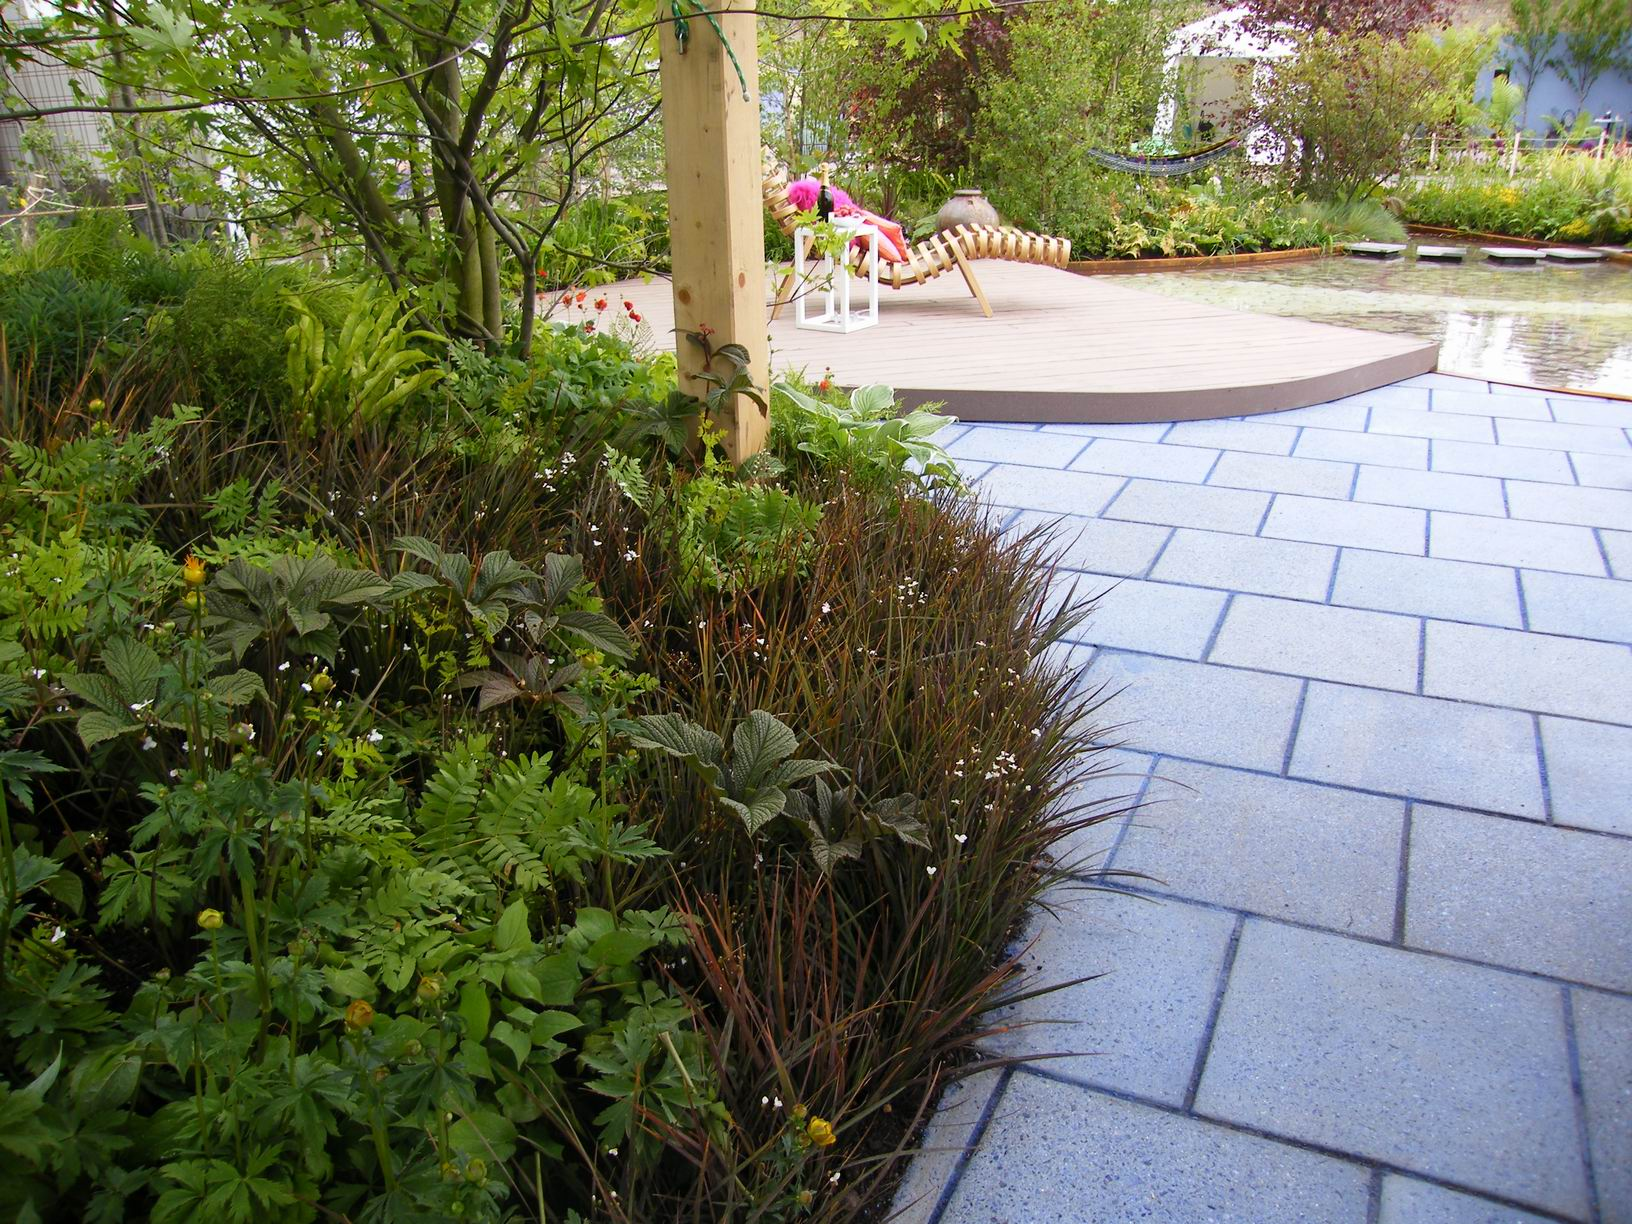 10 ideas for how to use paving and gravel in garden design for Gravel gardens design ideas